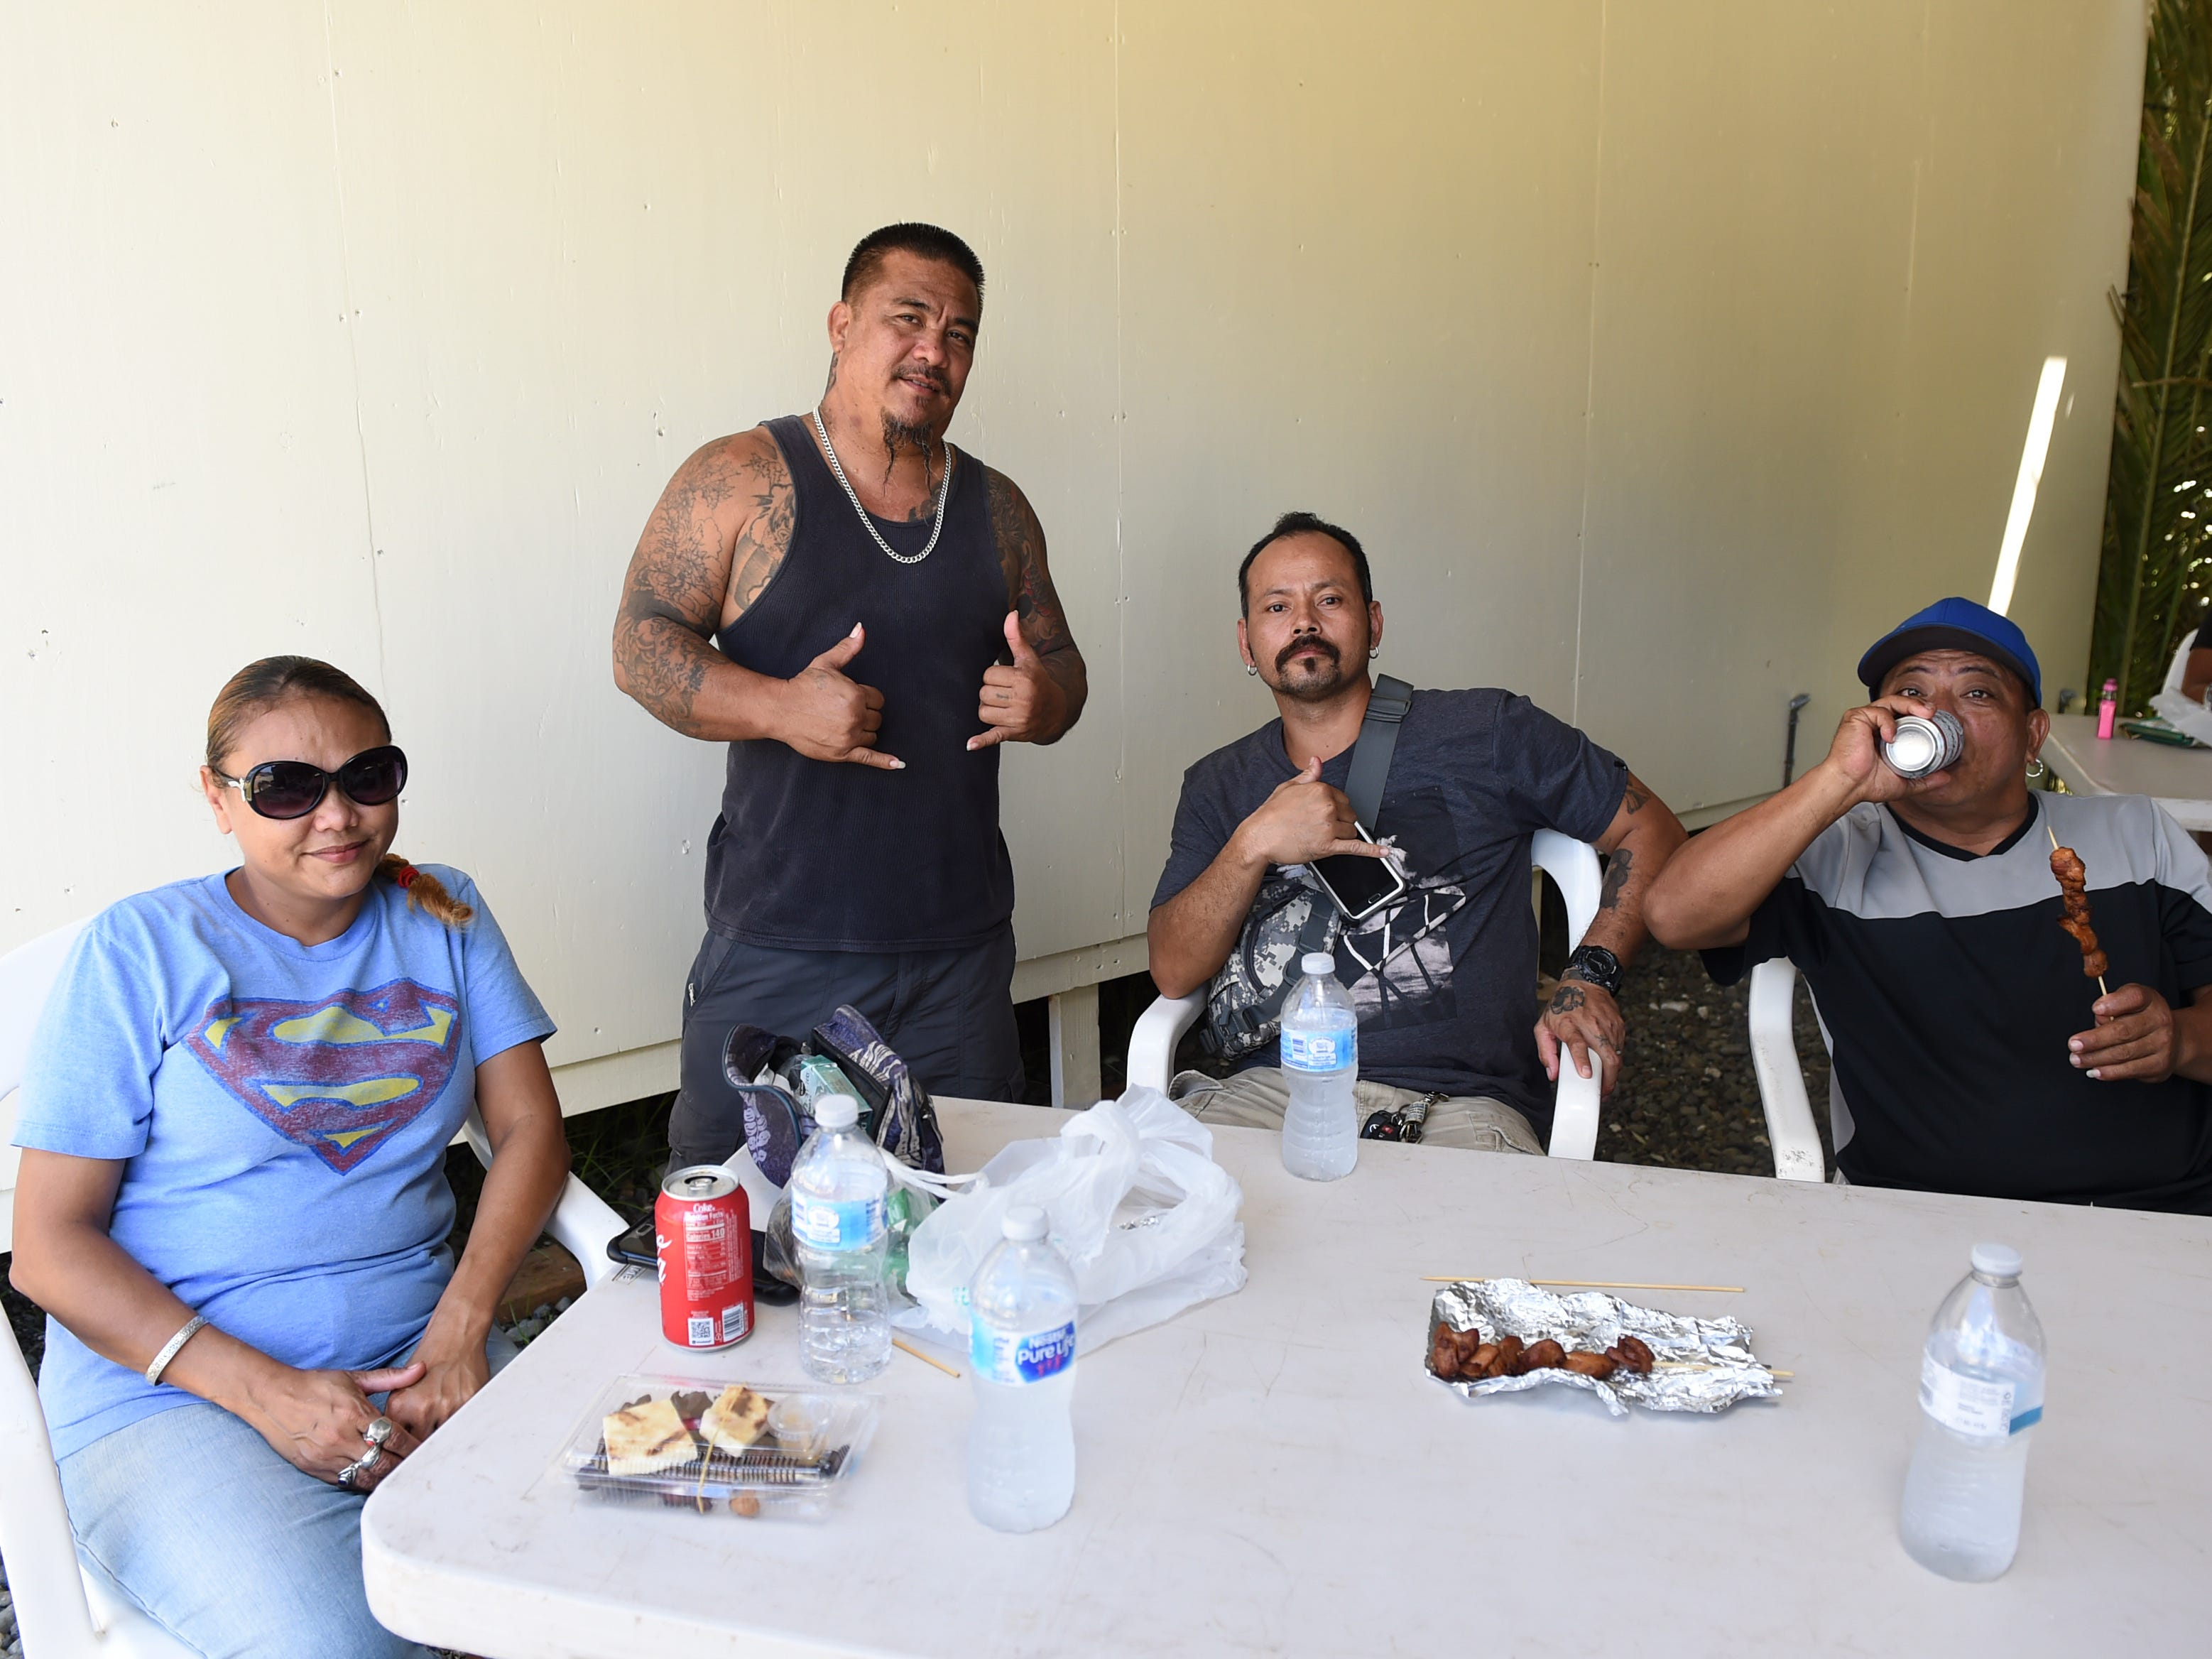 Saipan visitors catch the last day of the Guam History and Chamorro Heritage Day Festival 2019 at Umatac Bay Park, March 10, 2019. From left: Vanessa and Steven Igisaiar, Jojo Resureccion, and Bunchan Blas.